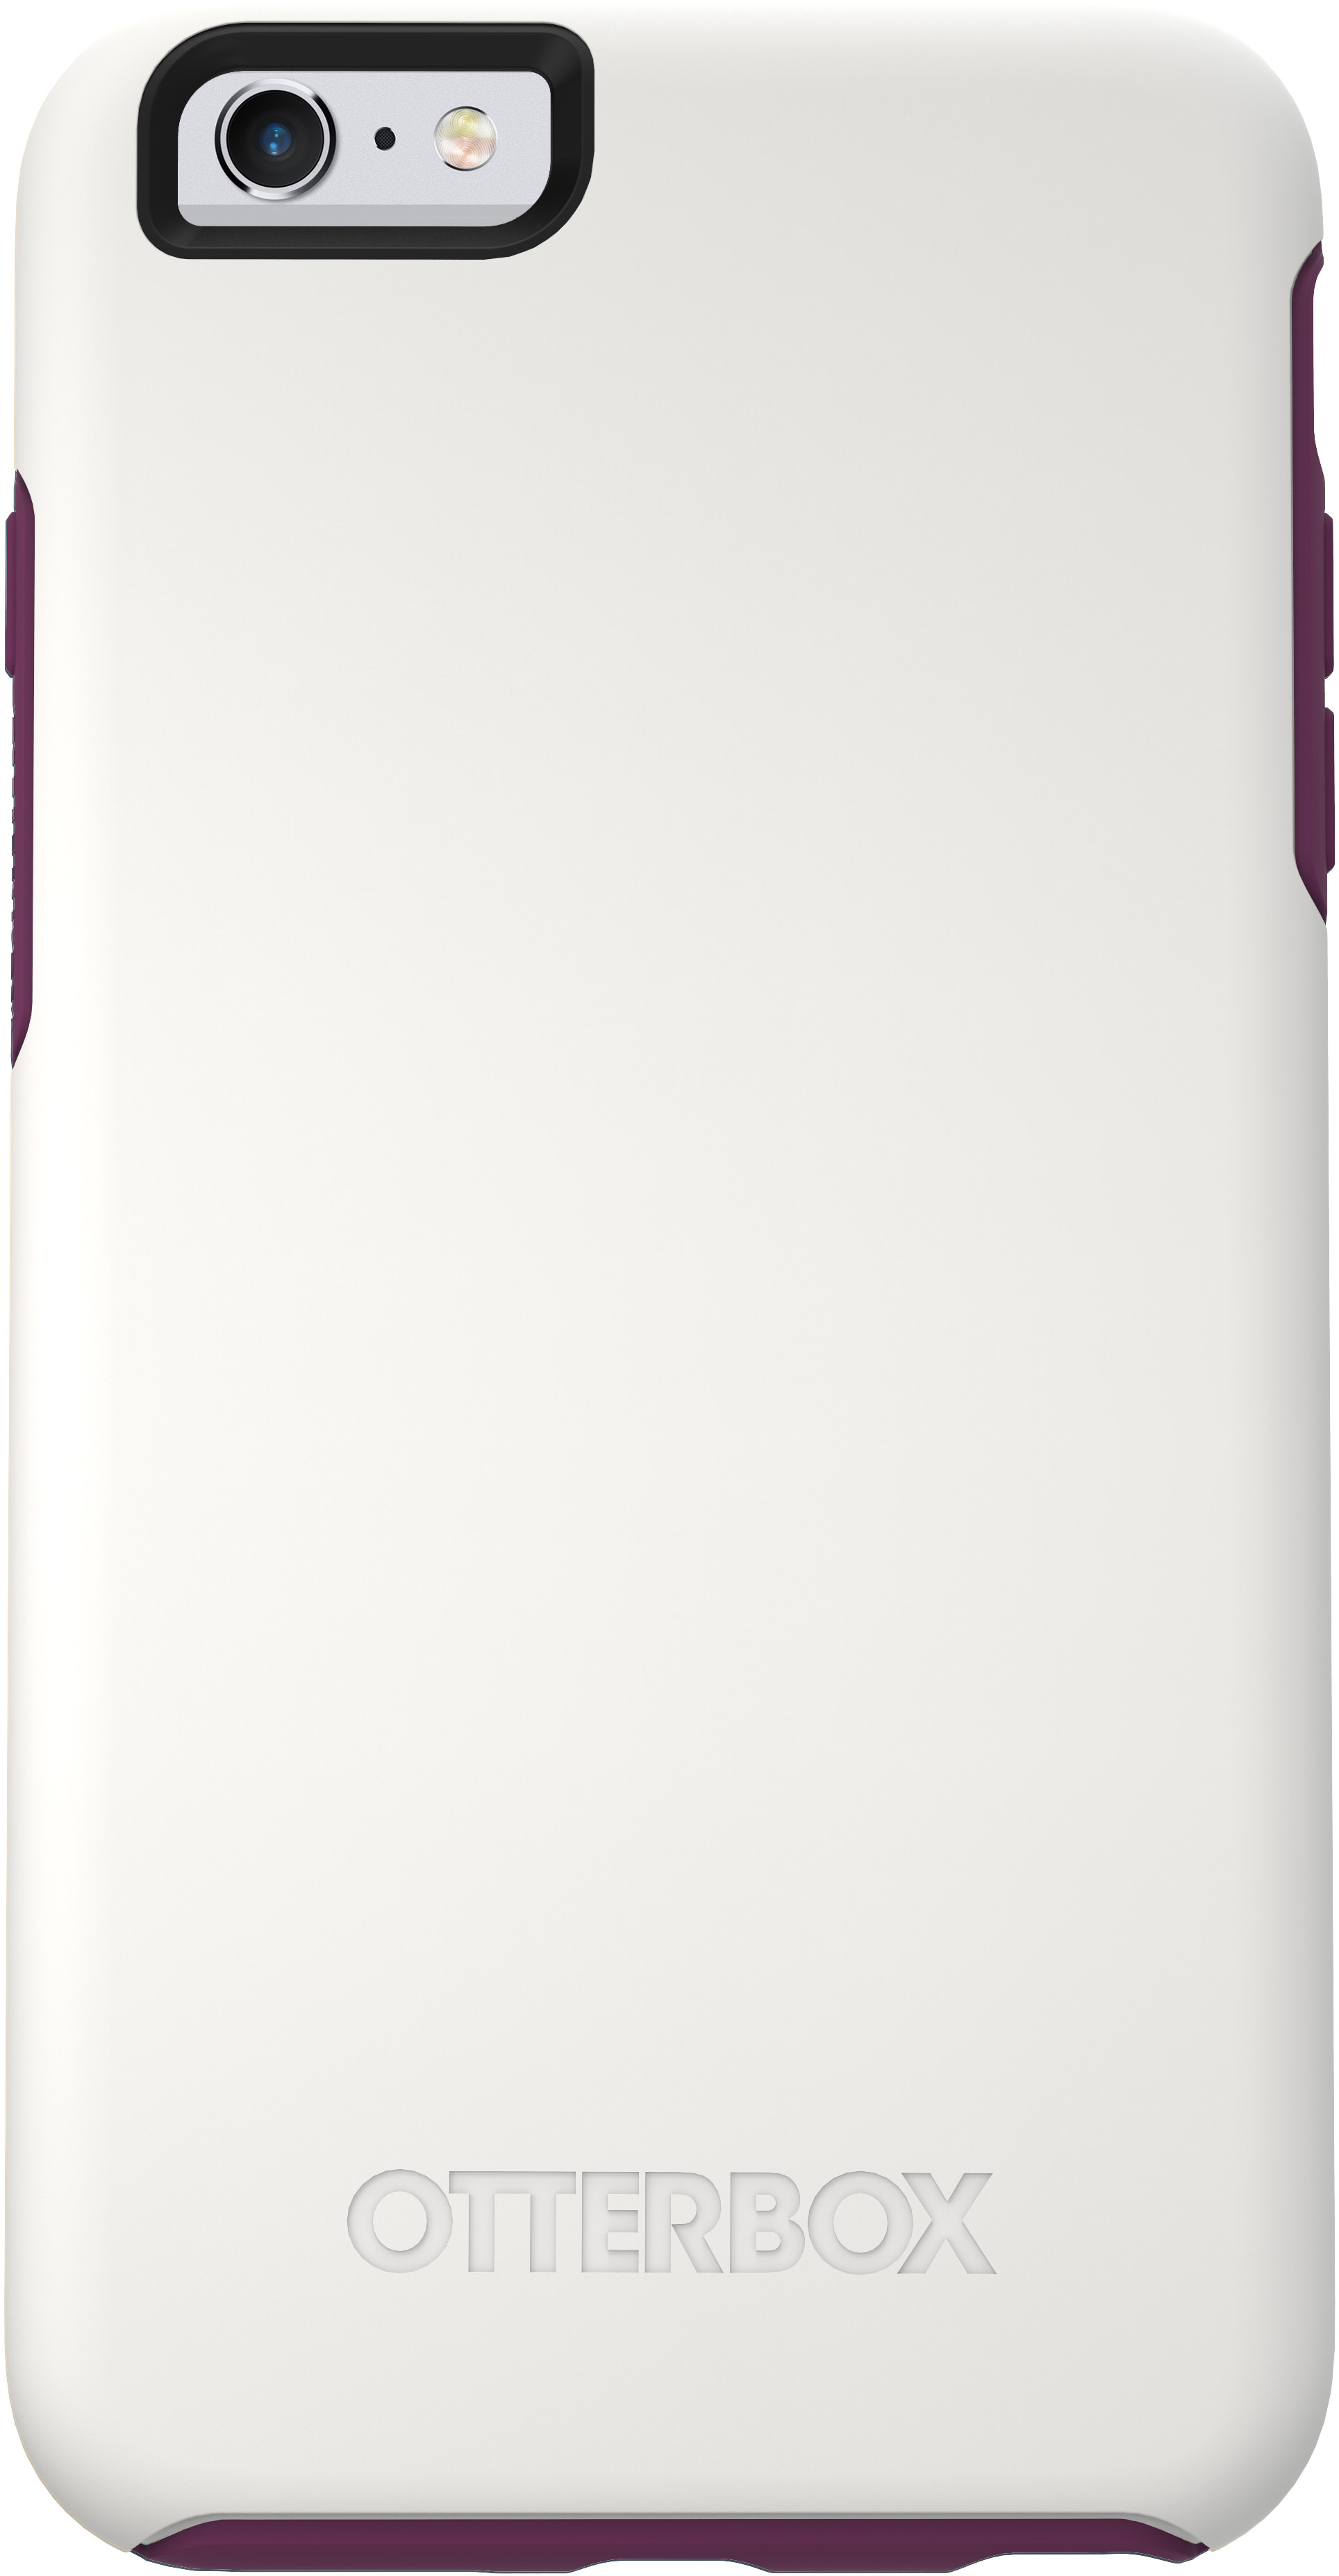 OtterBox iPhone 6s case - Symmertry sleek designer case